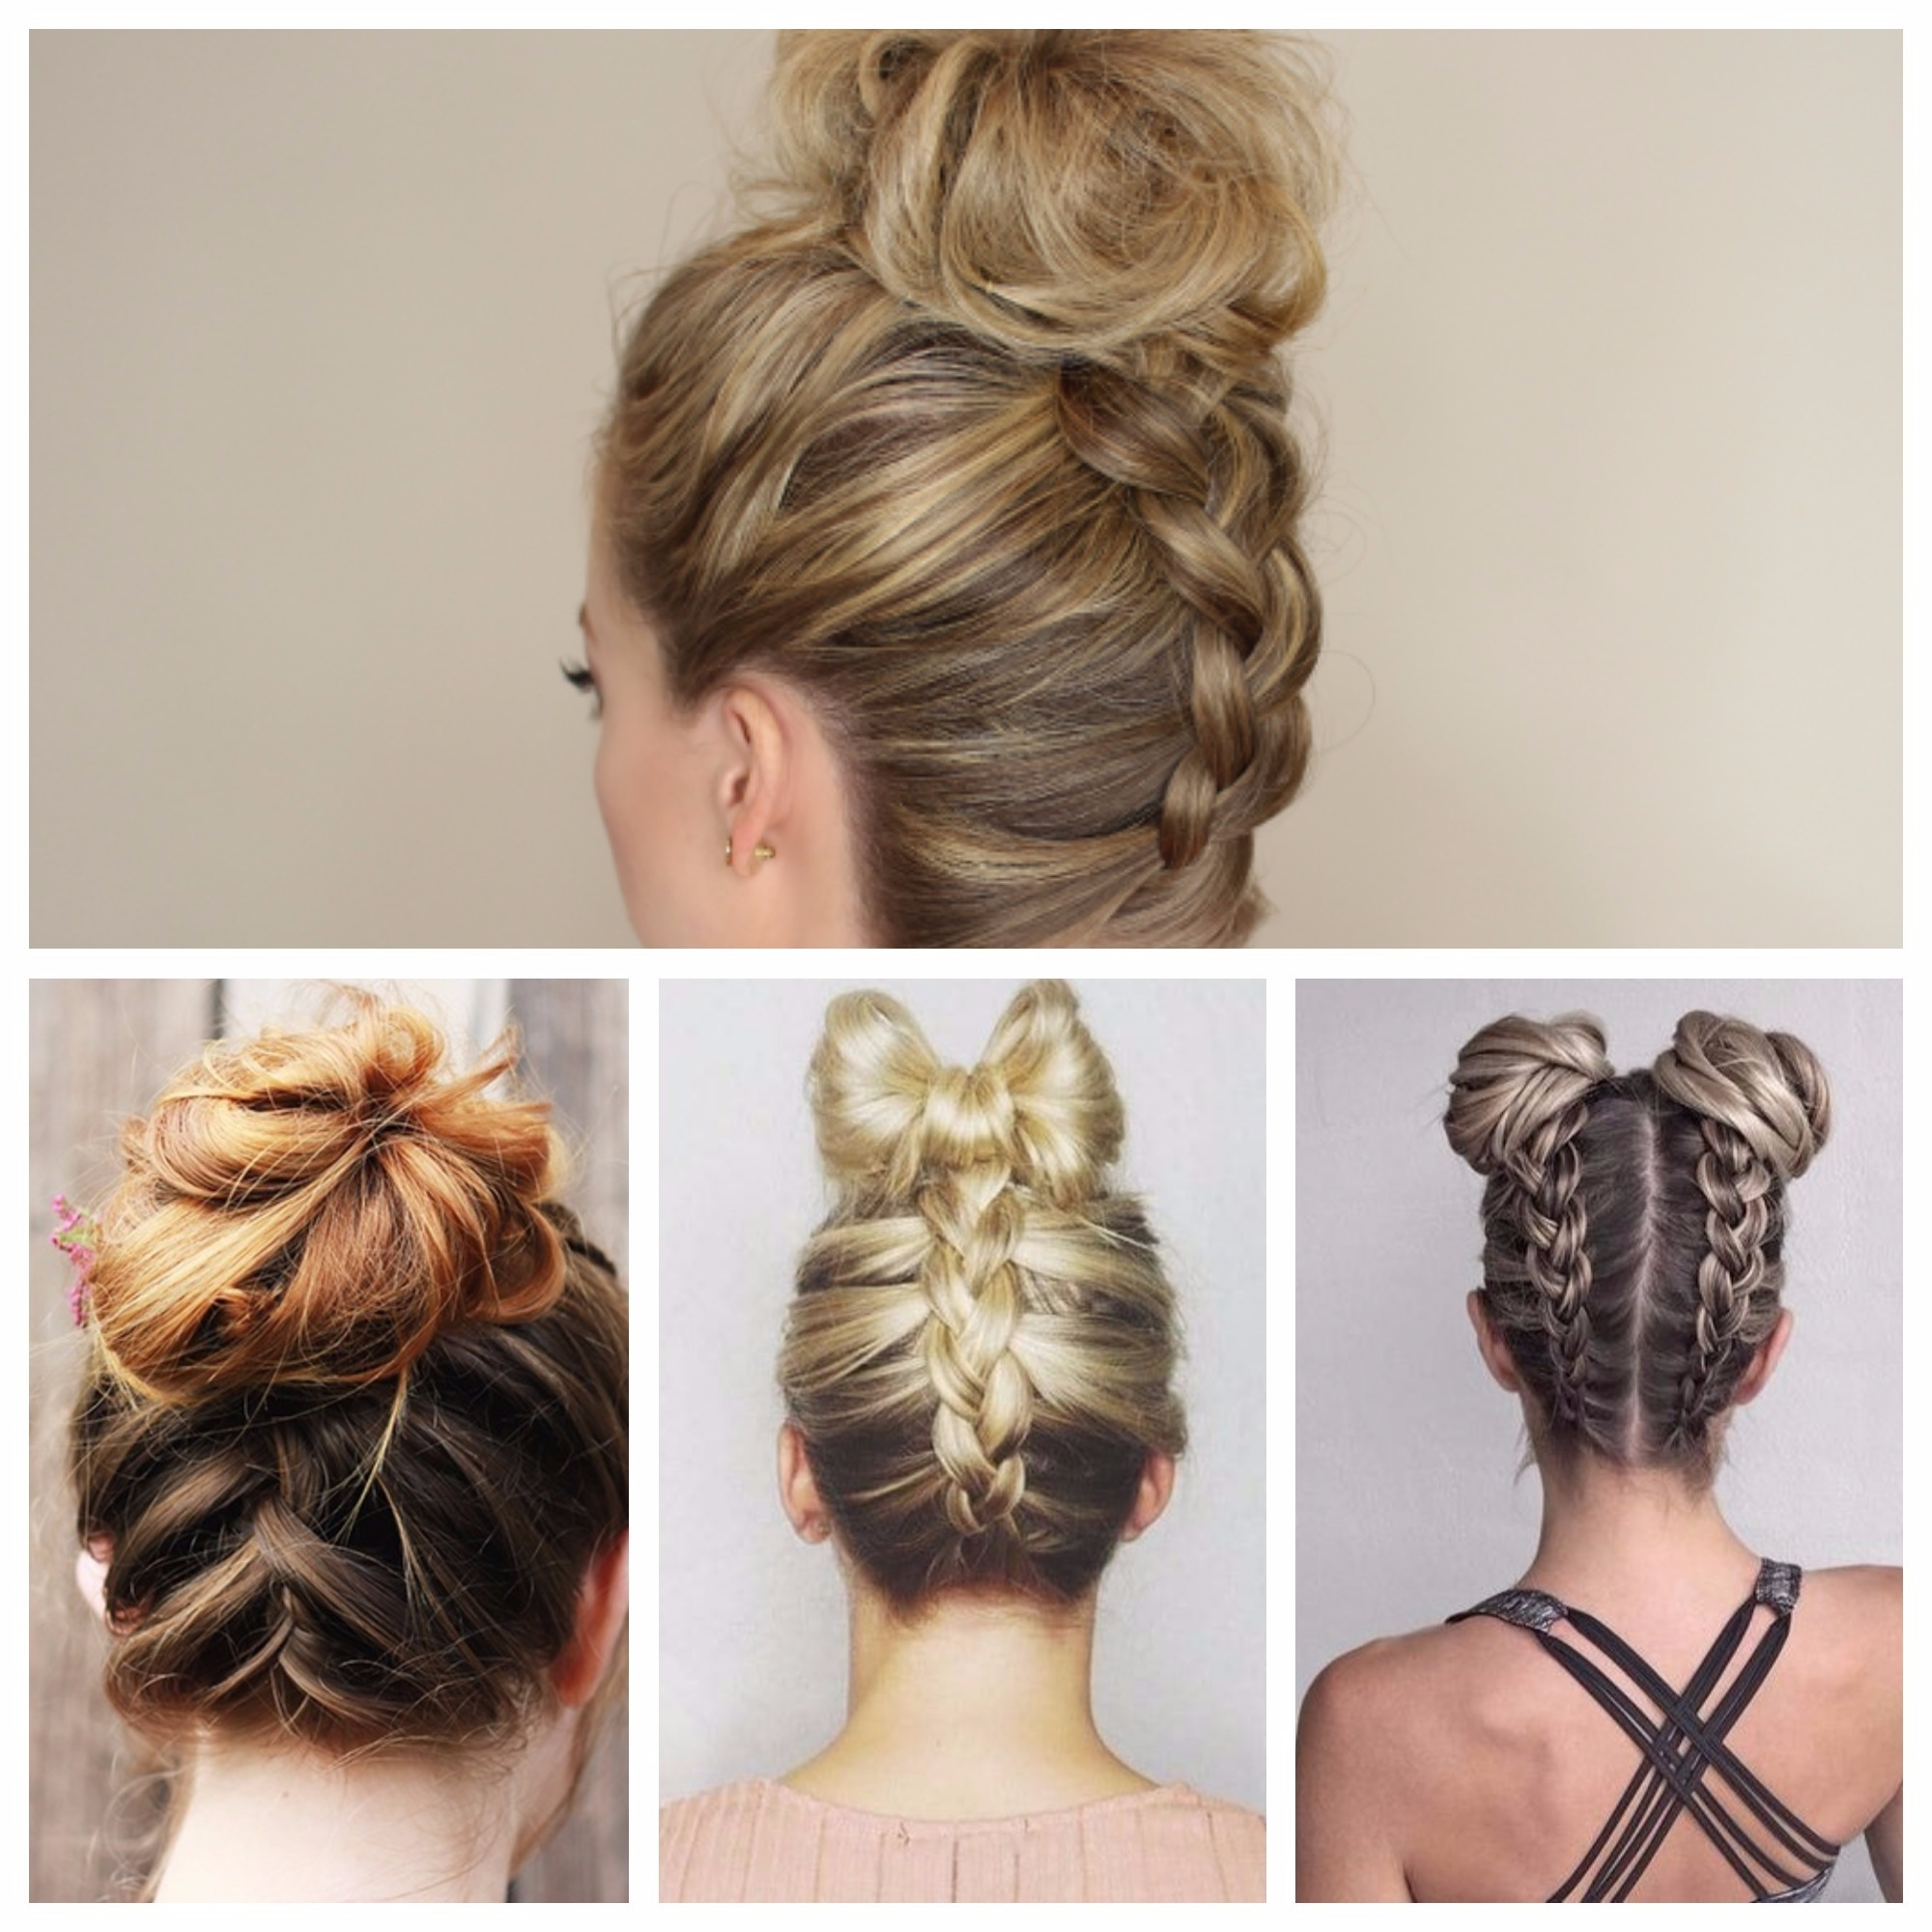 Current French Braid Hairstyles With Regard To Upside Down French Braid Hairstyles For 2018 – New Hairstyles (View 9 of 15)